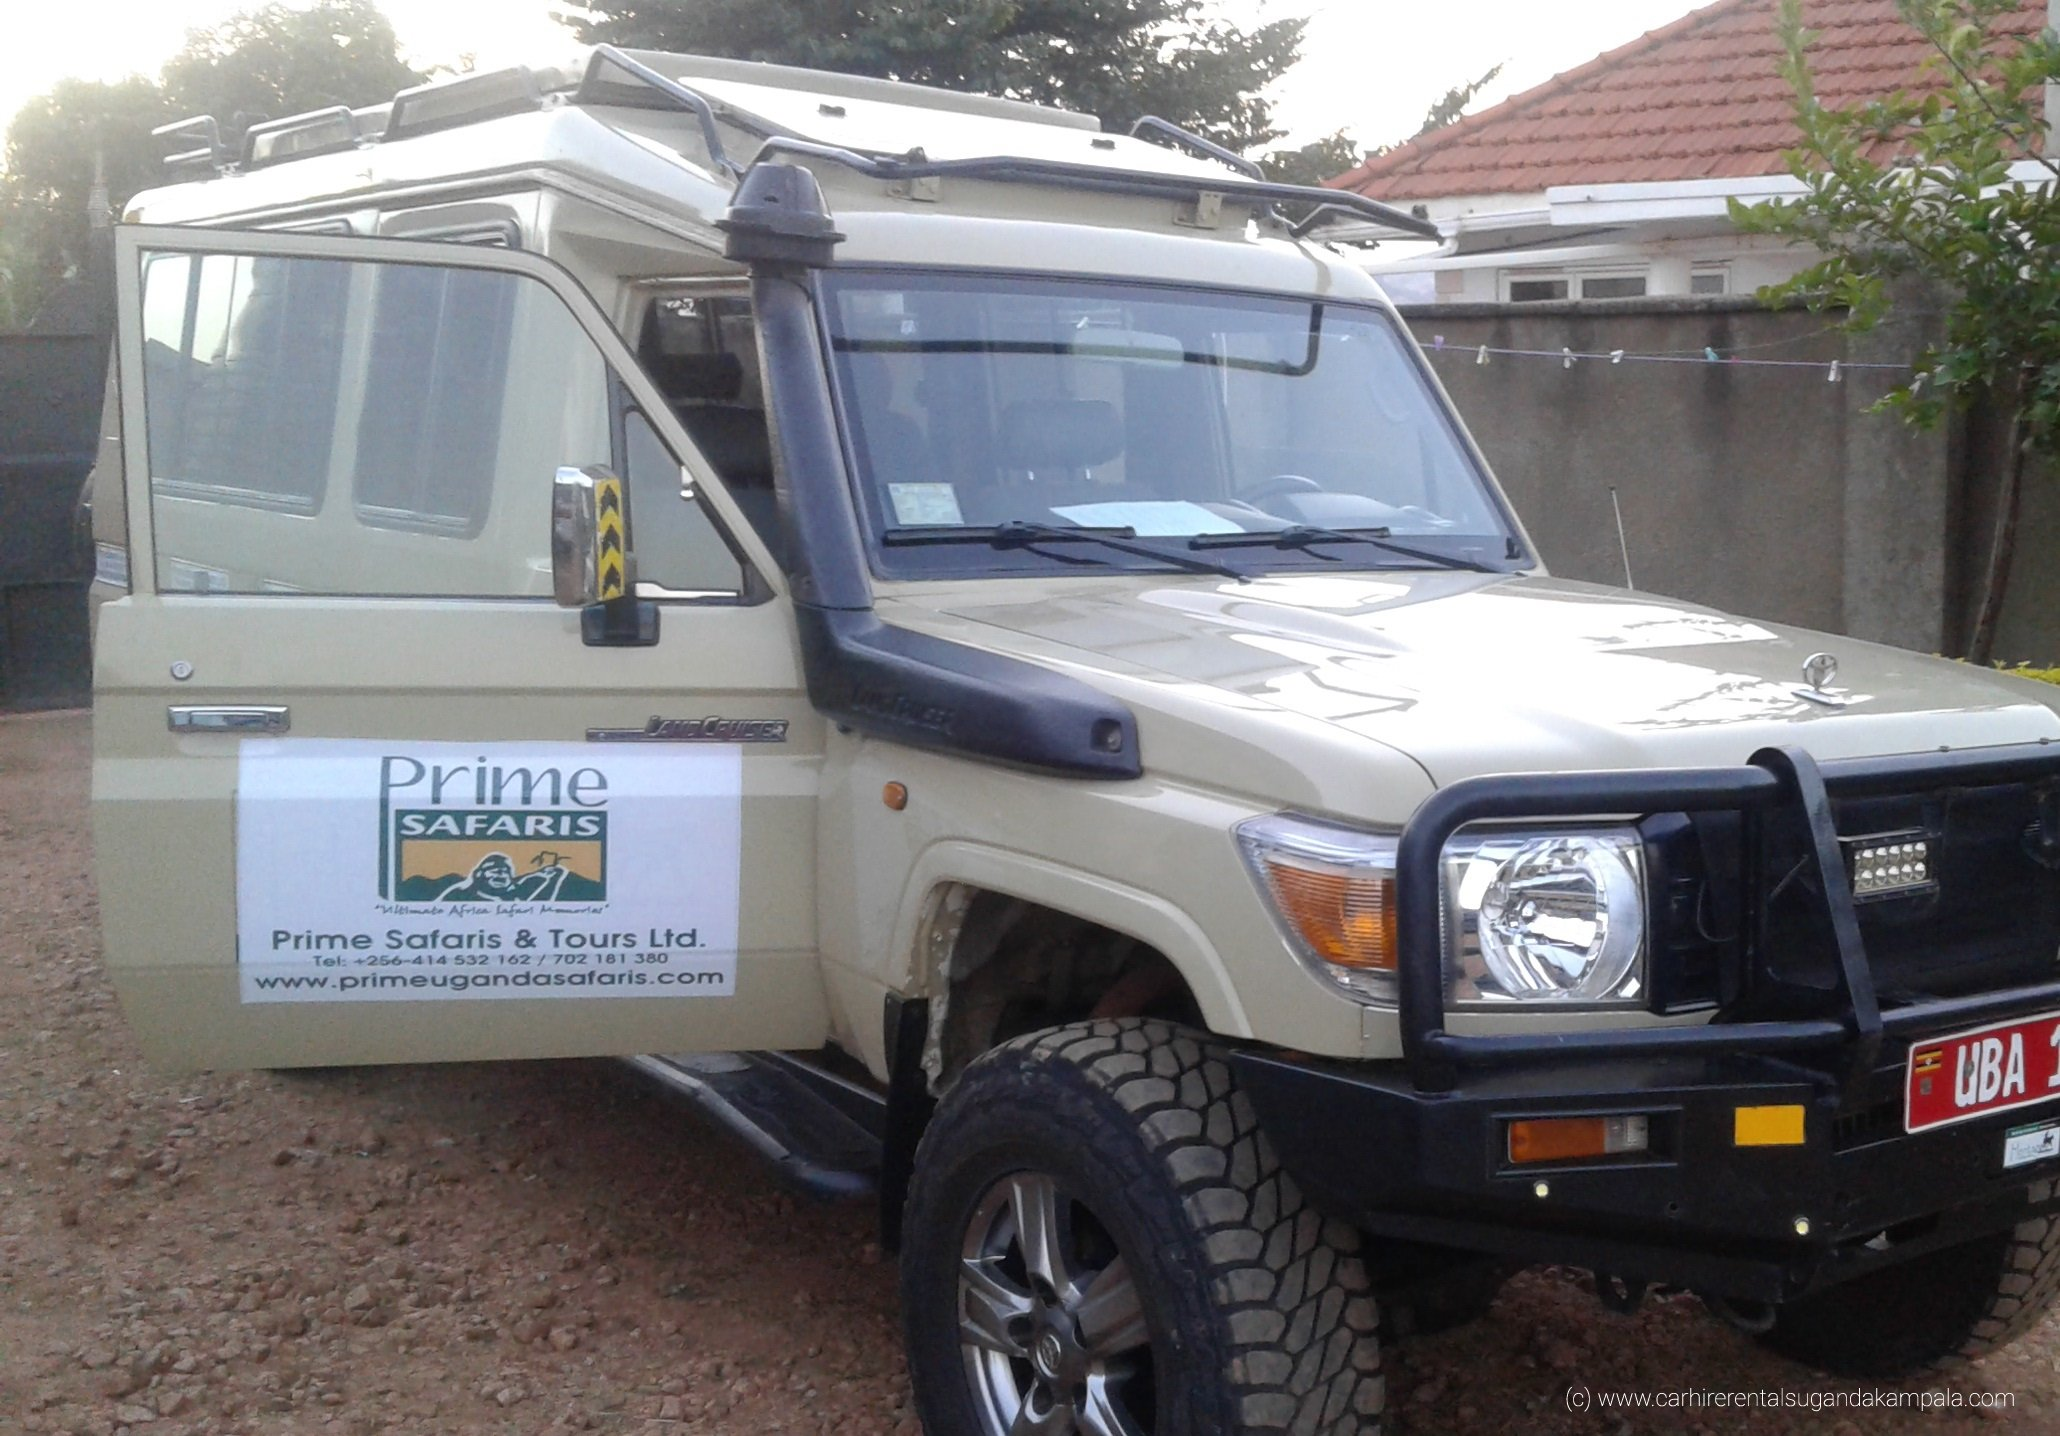 Latest models of 4x4 safari vehicles for rent in Uganda